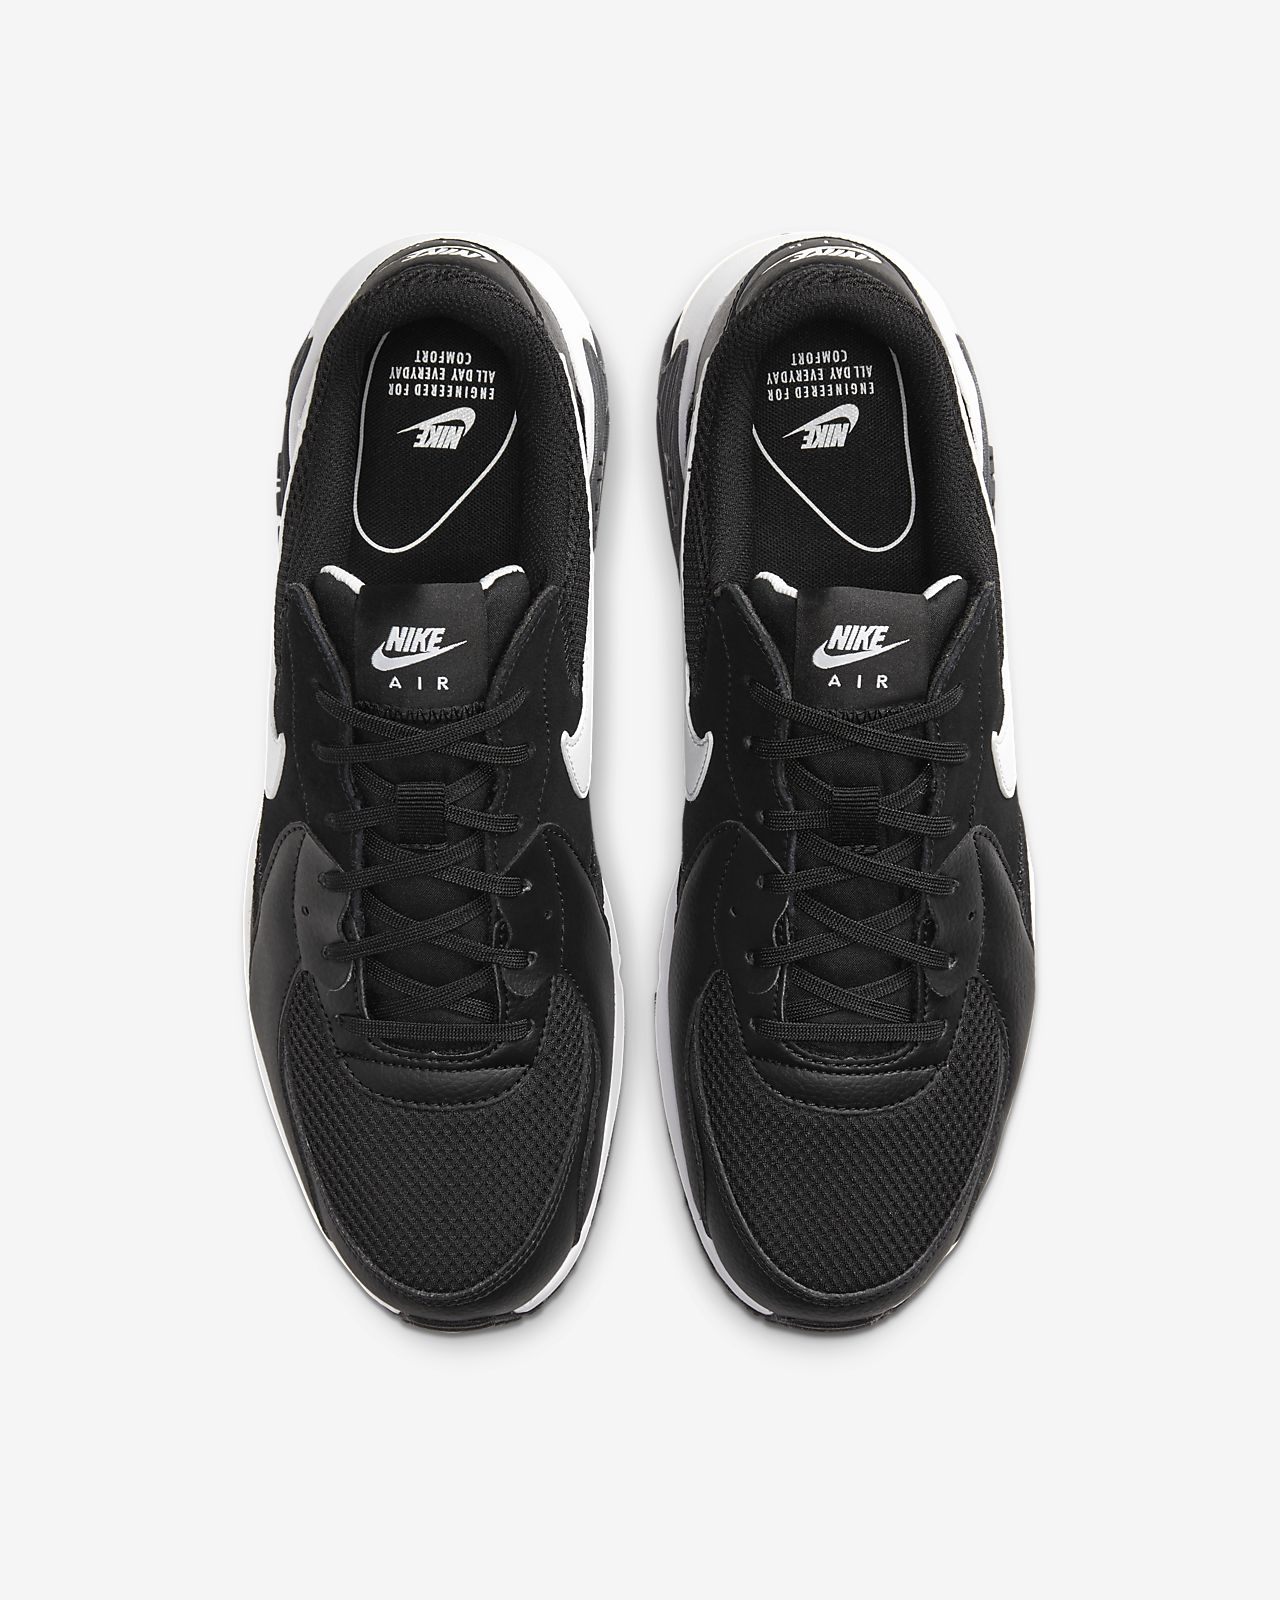 Nike Air Max Excee Black White CD4165 001 Running Shoes On Sale